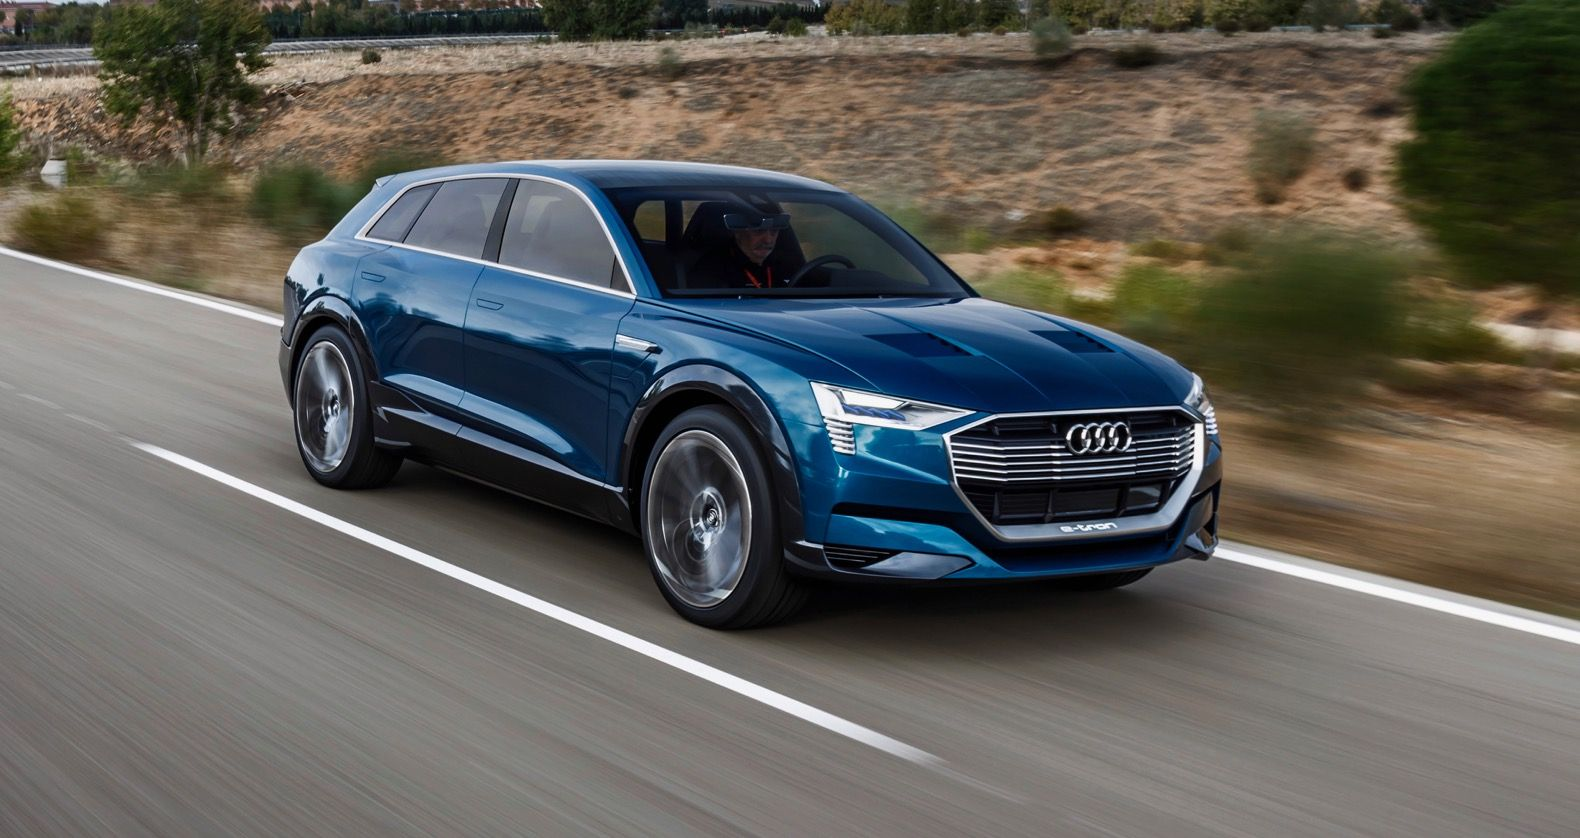 2019 audi e tron audi is bringing another full electric e tron model